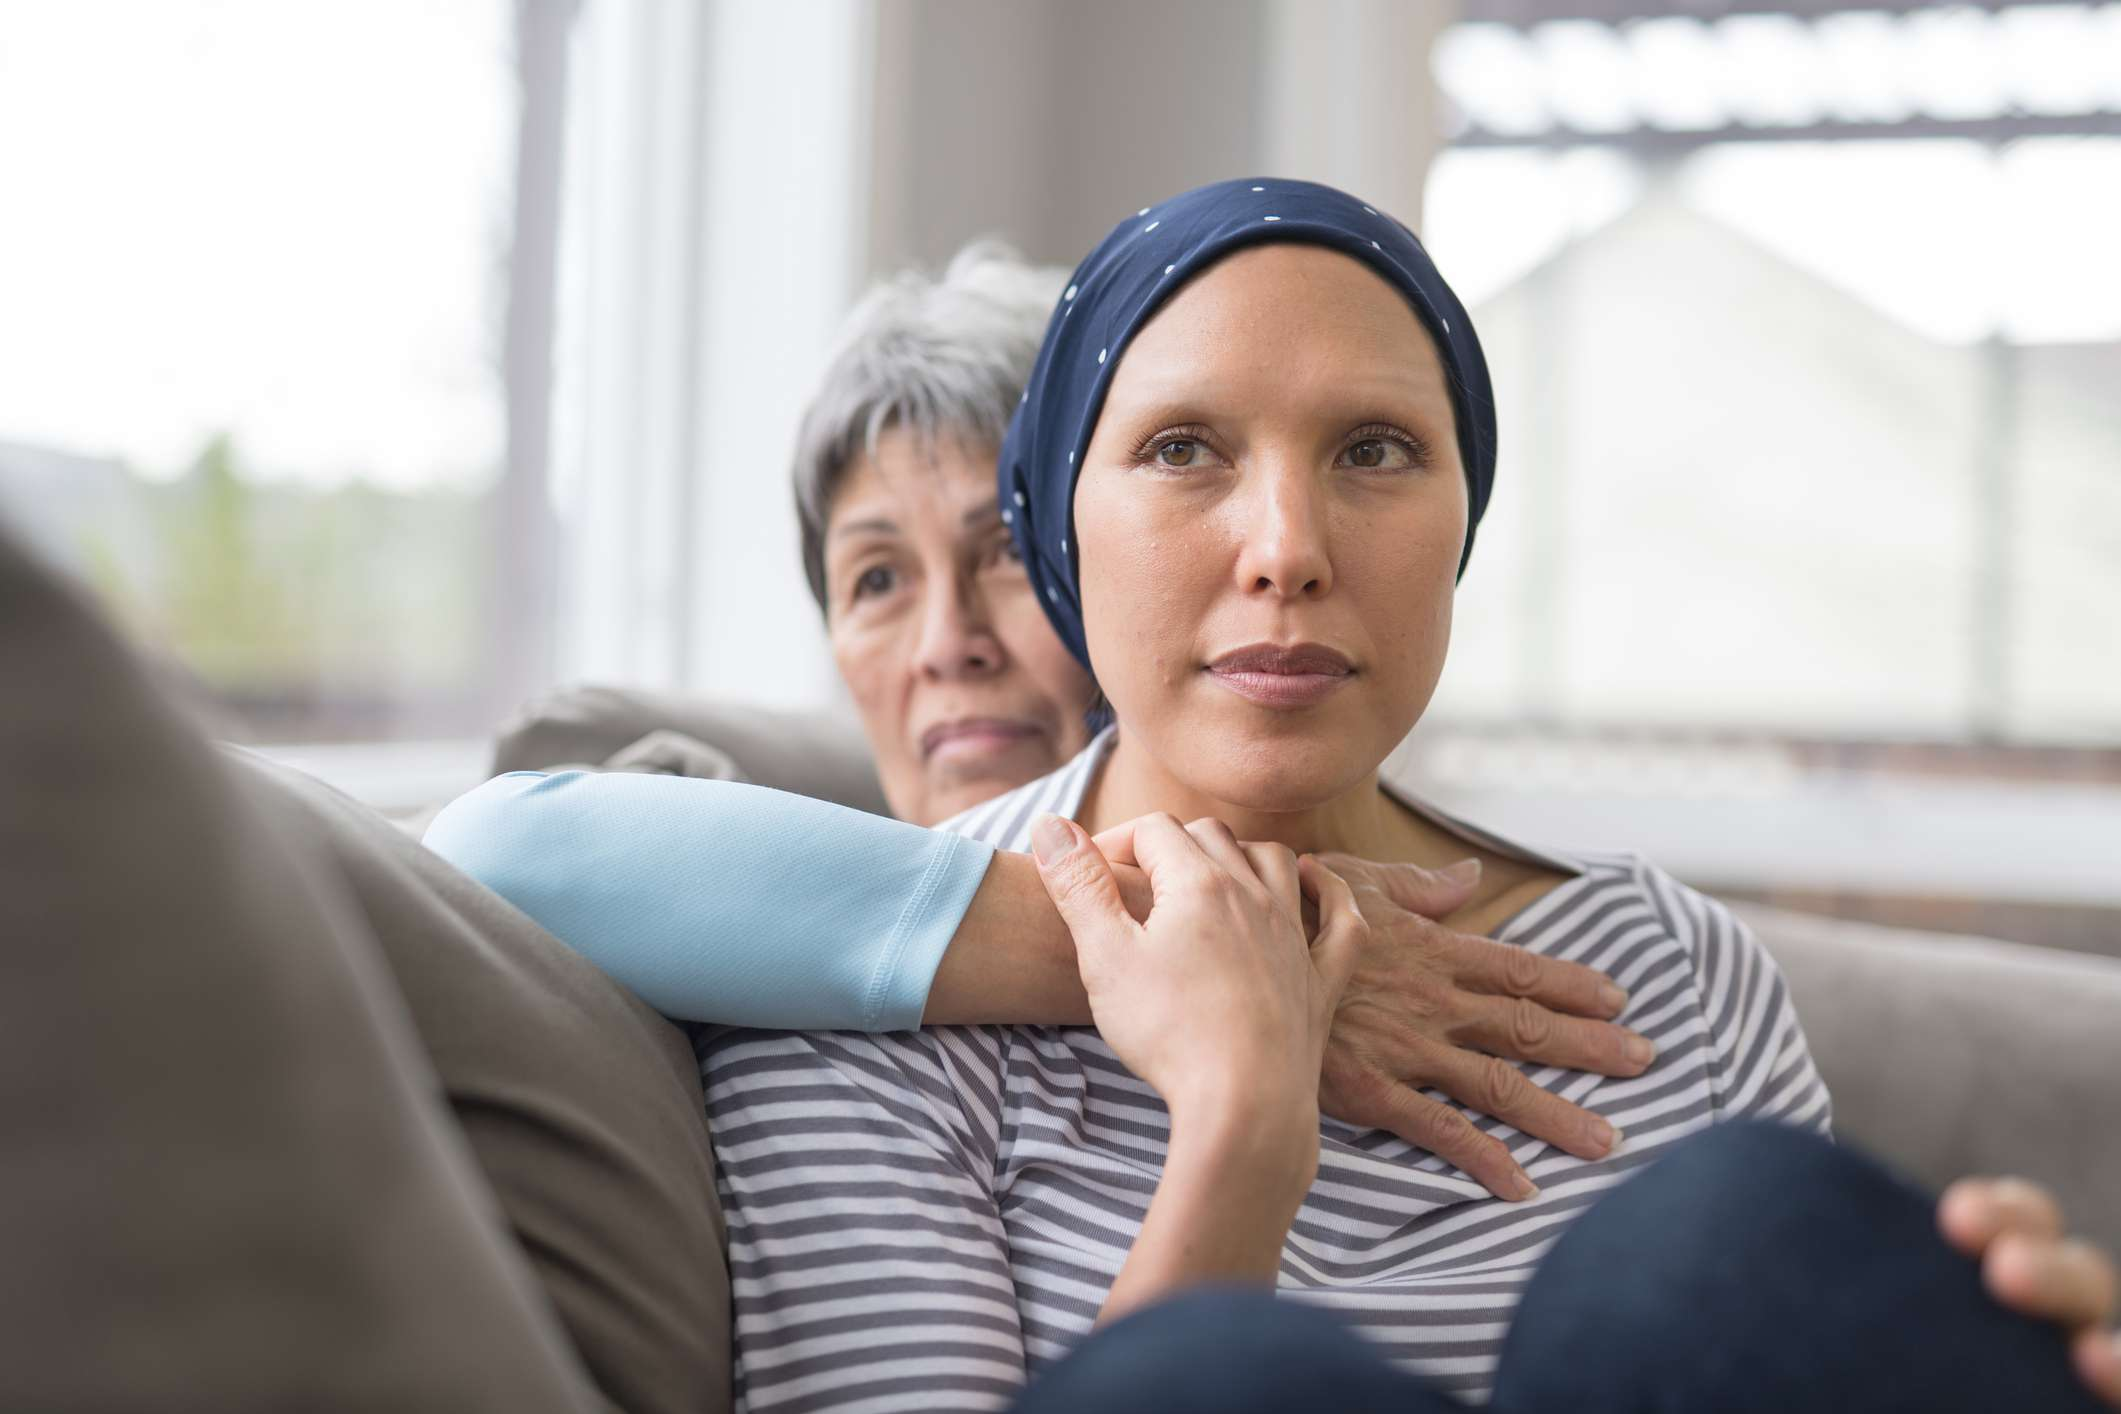 Asian woman in 60s embracing her mid-30s daughter who is fighting cancer and is wearing a headcovering. They are seated on a couch and have contemplative expressions.